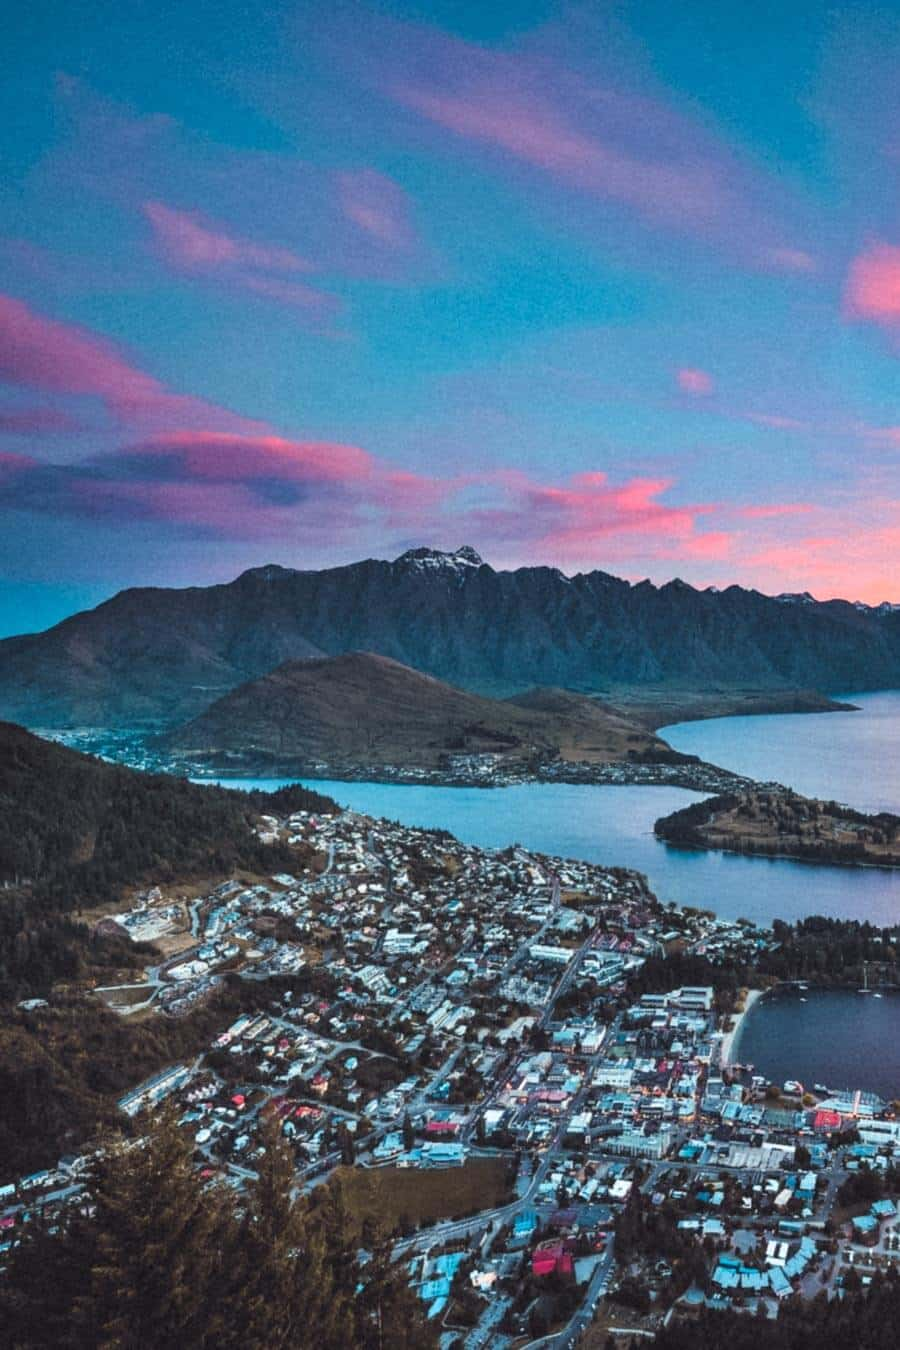 New Zealand most breathtaking view of the of most beautiful city in New Zealand, Queenstown in the South Island.